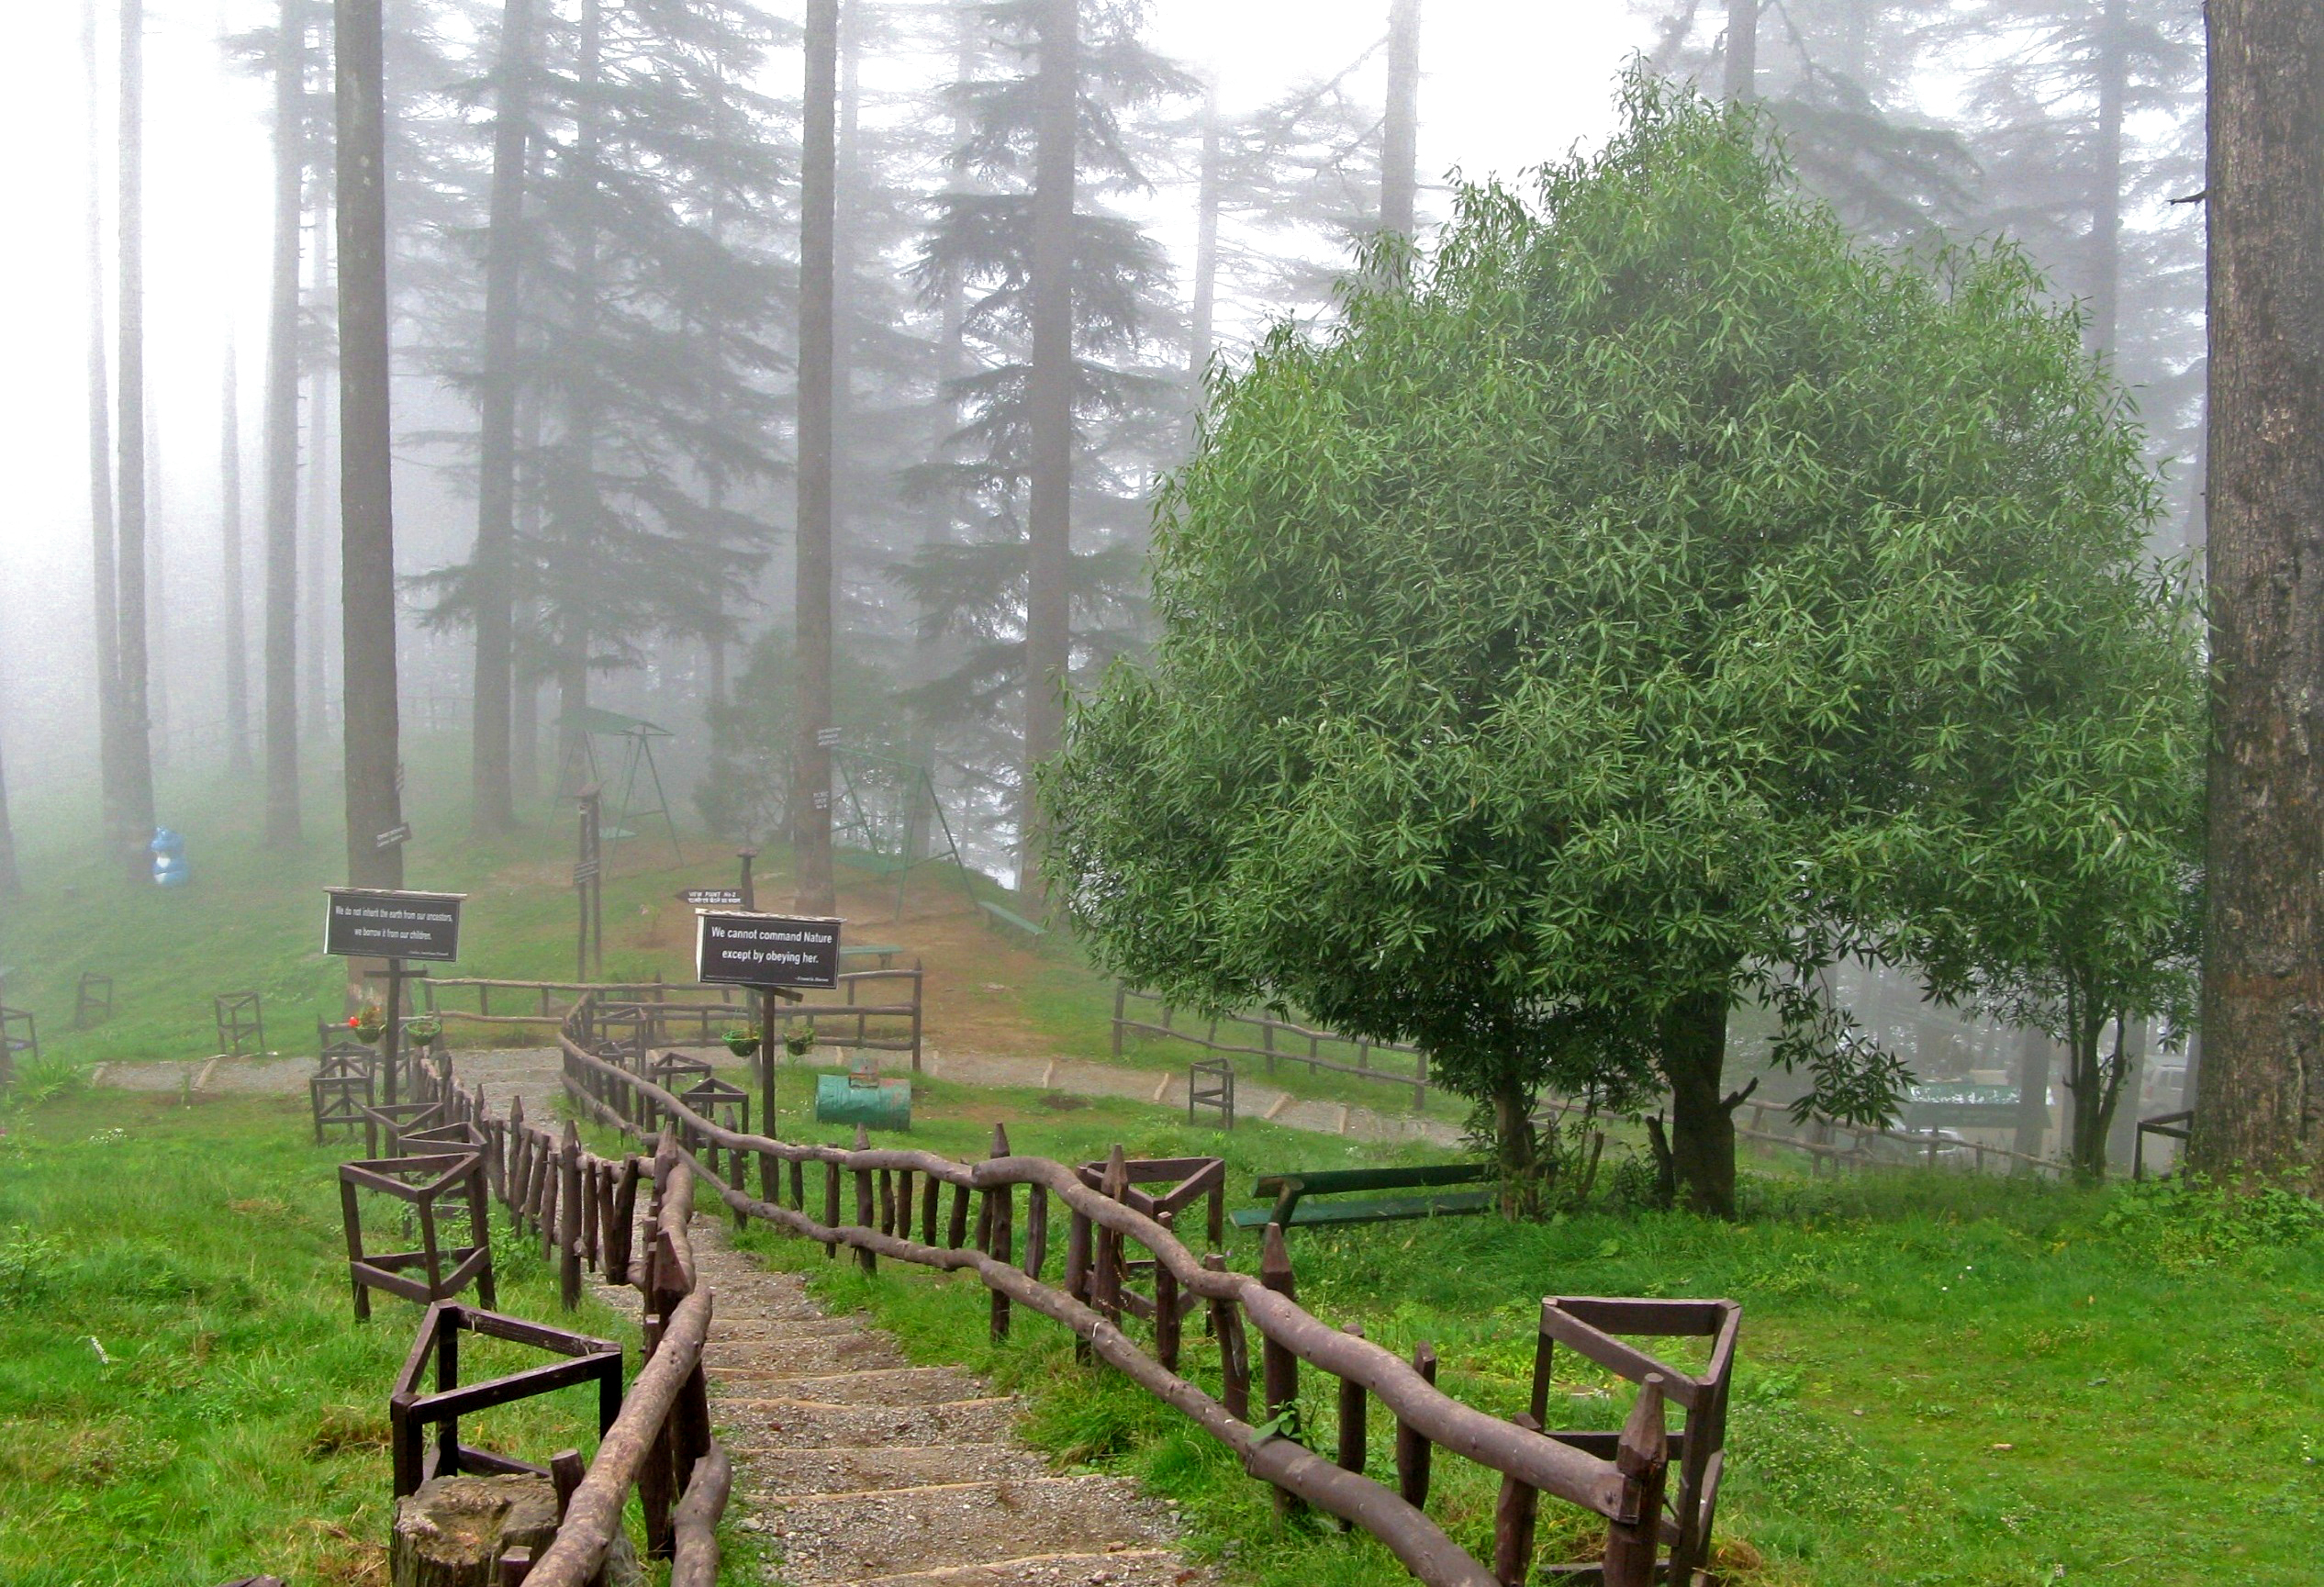 Dhanaulti Tourist Places To Visit In Uttarakhand